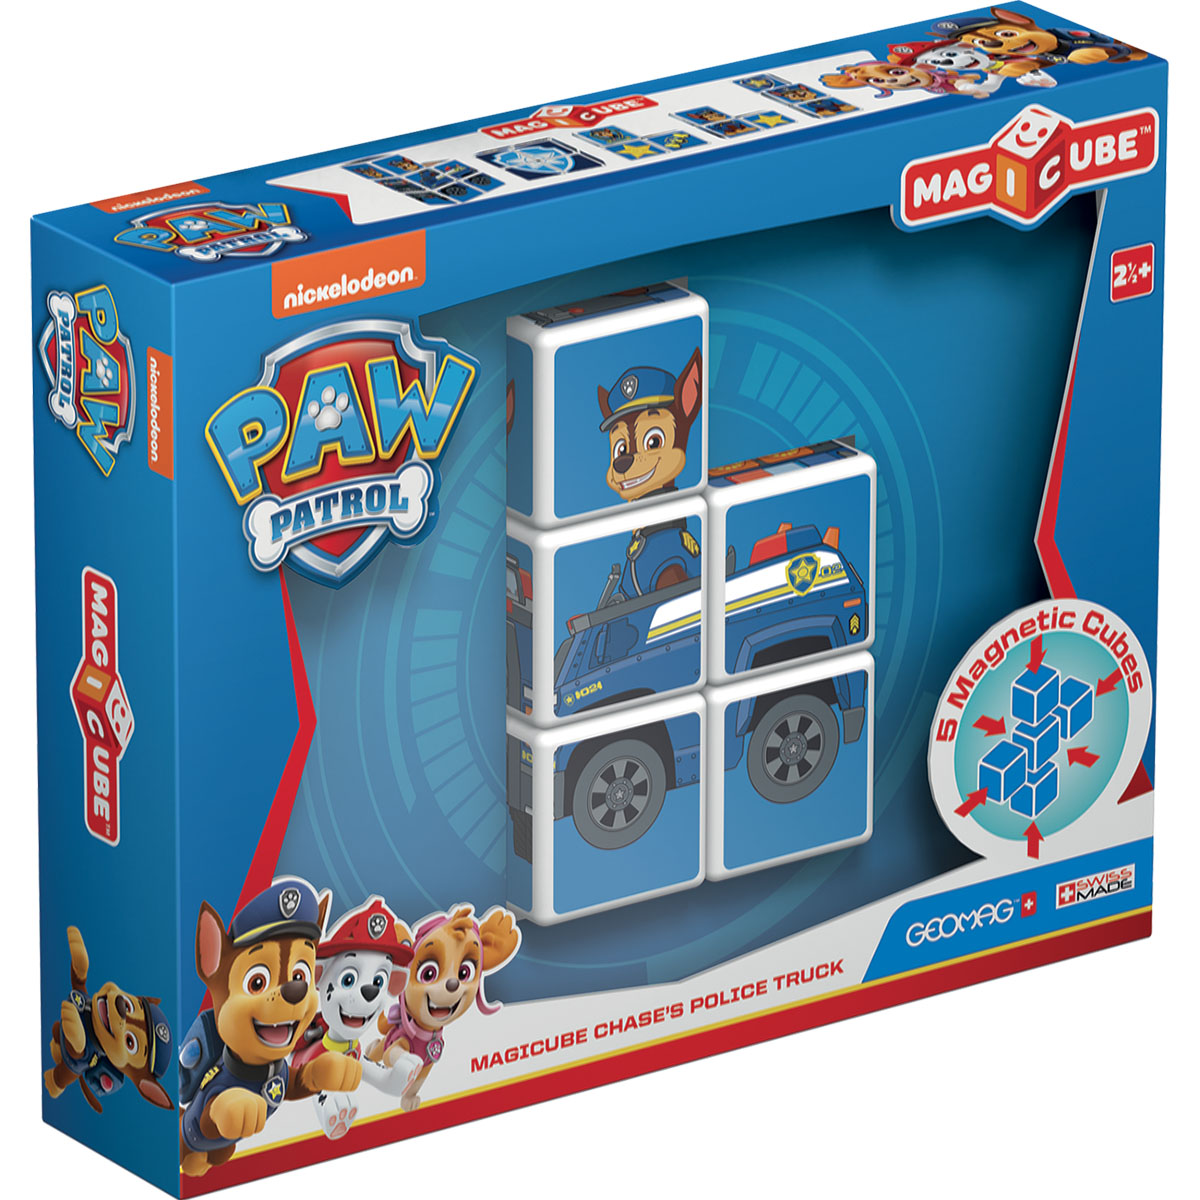 Joc de constructie magnetic Magic Cube, Paw Patrol, Chases's Police Truck